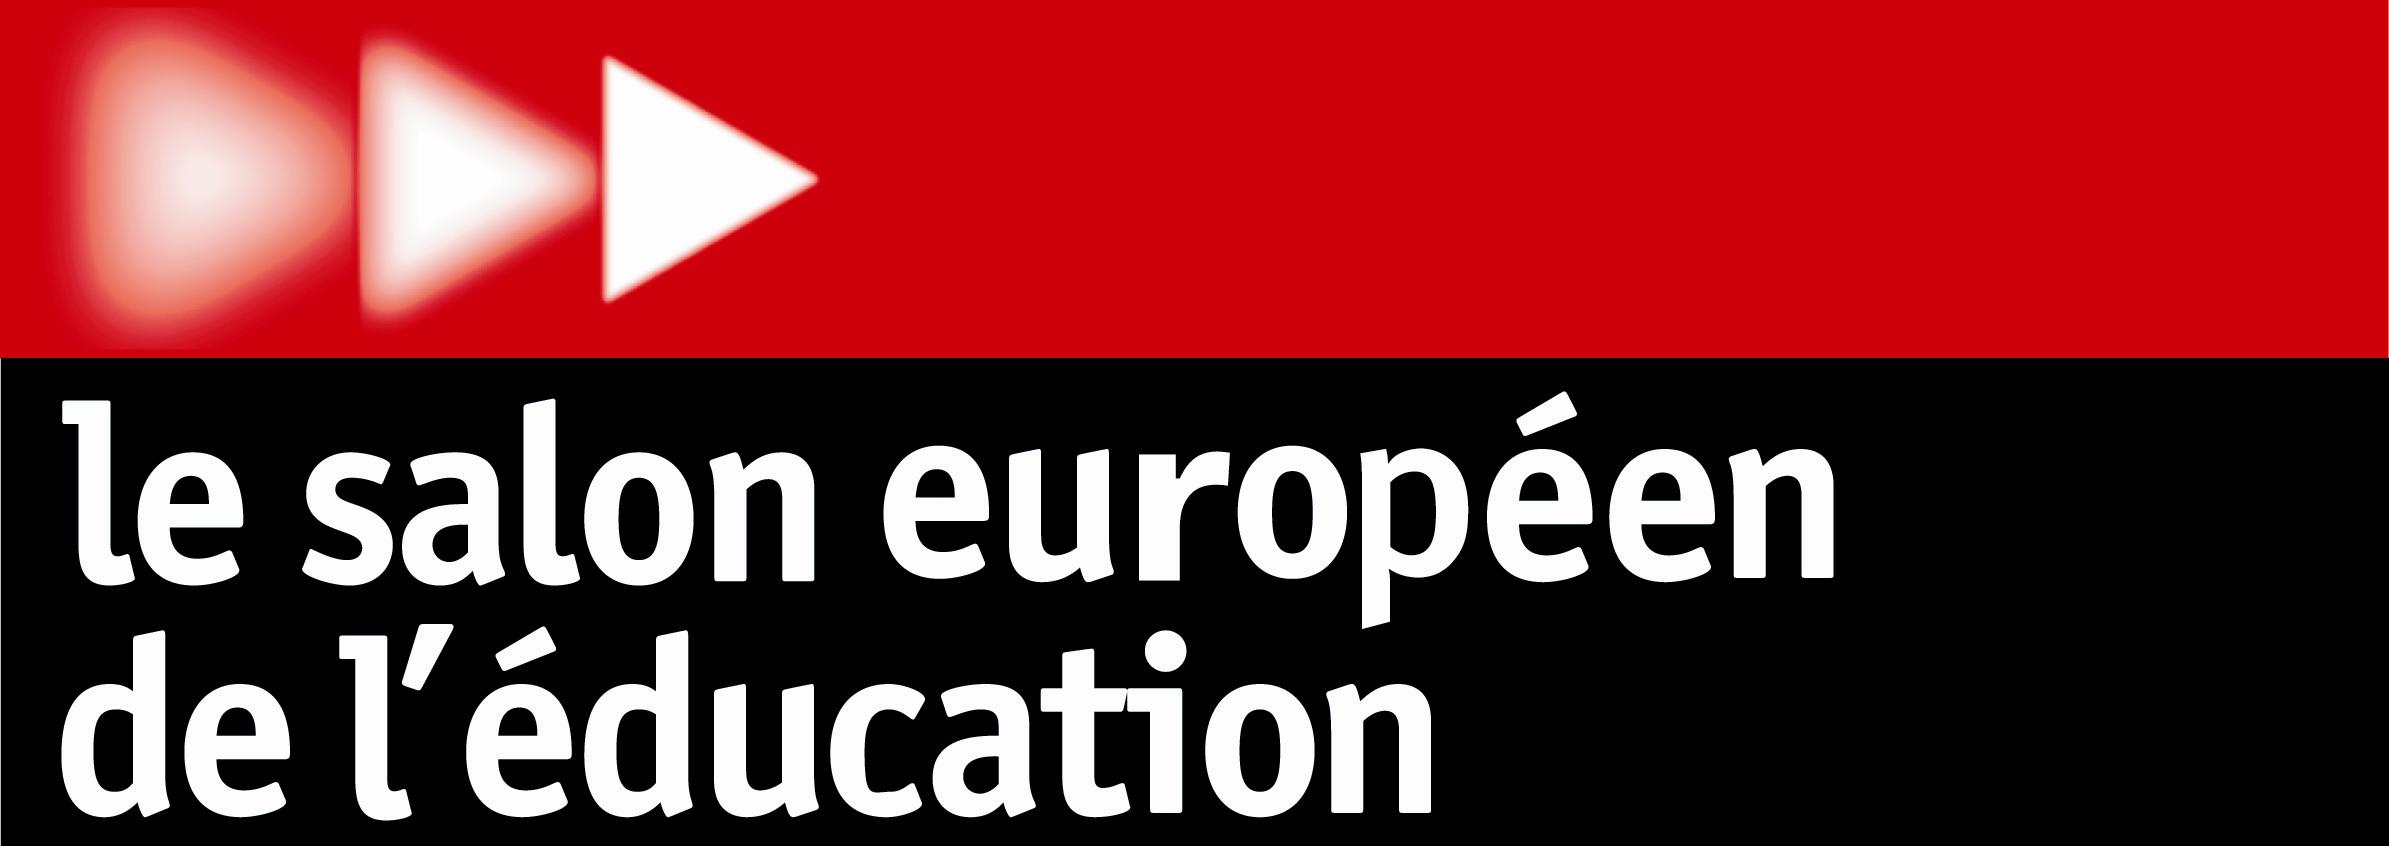 Le salon Europen de lducation  Sydologie